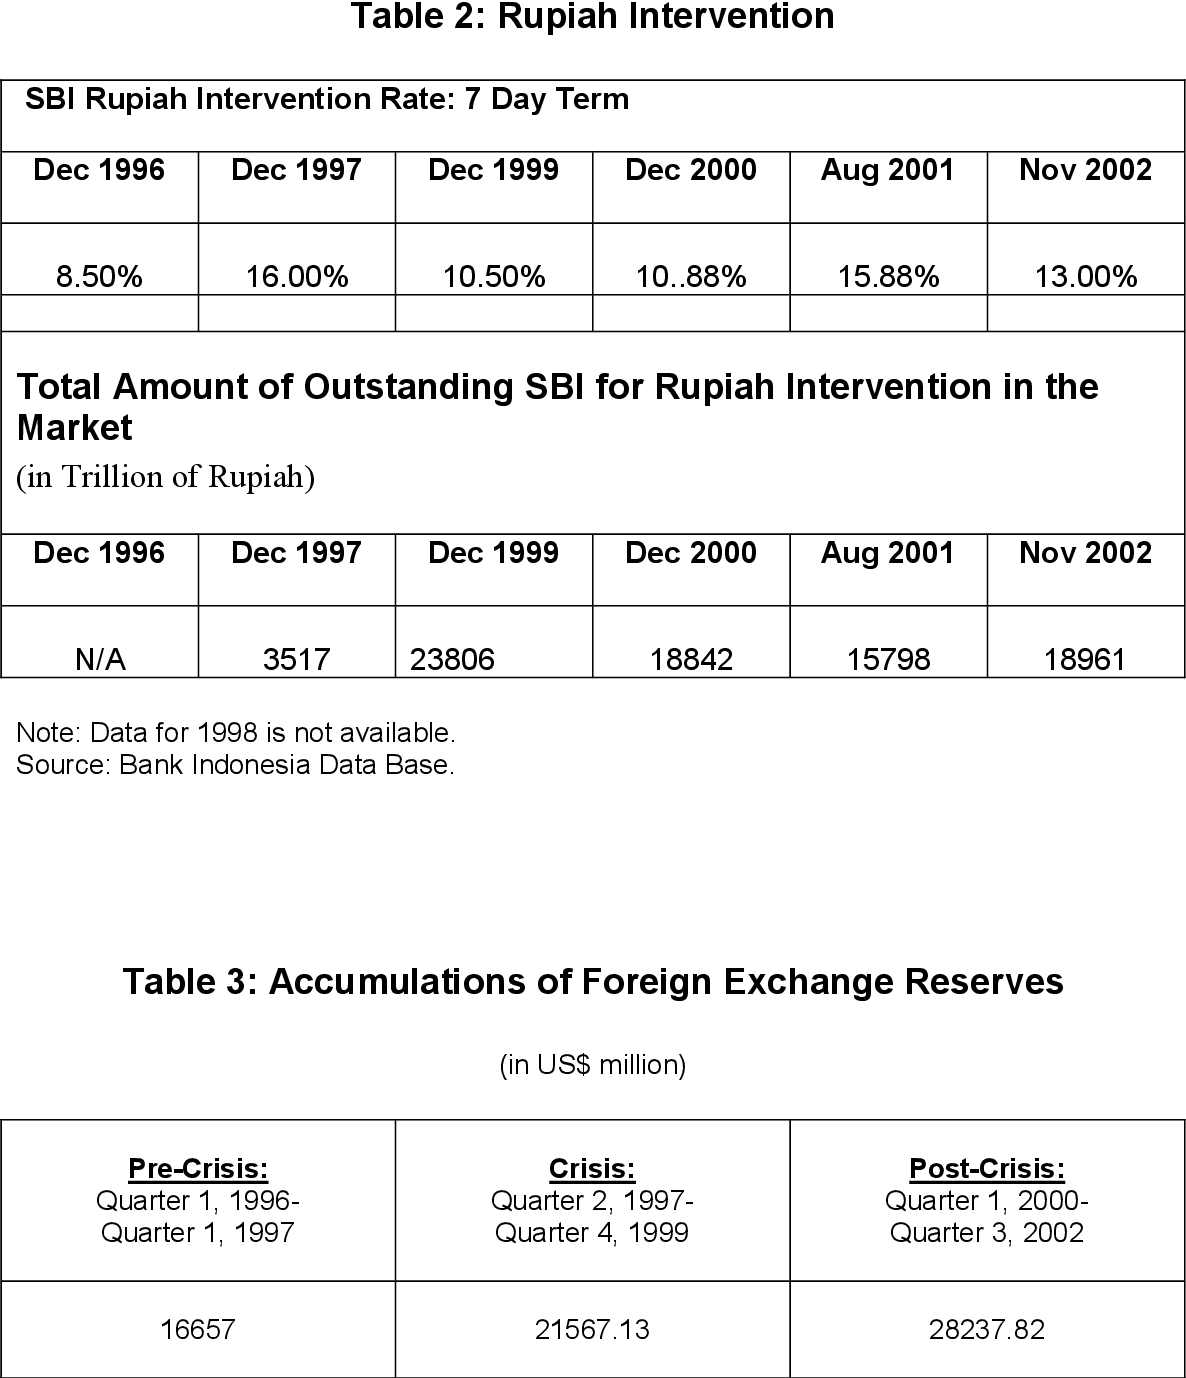 pdf] Read Online And Download Foreign Exchange Reserves